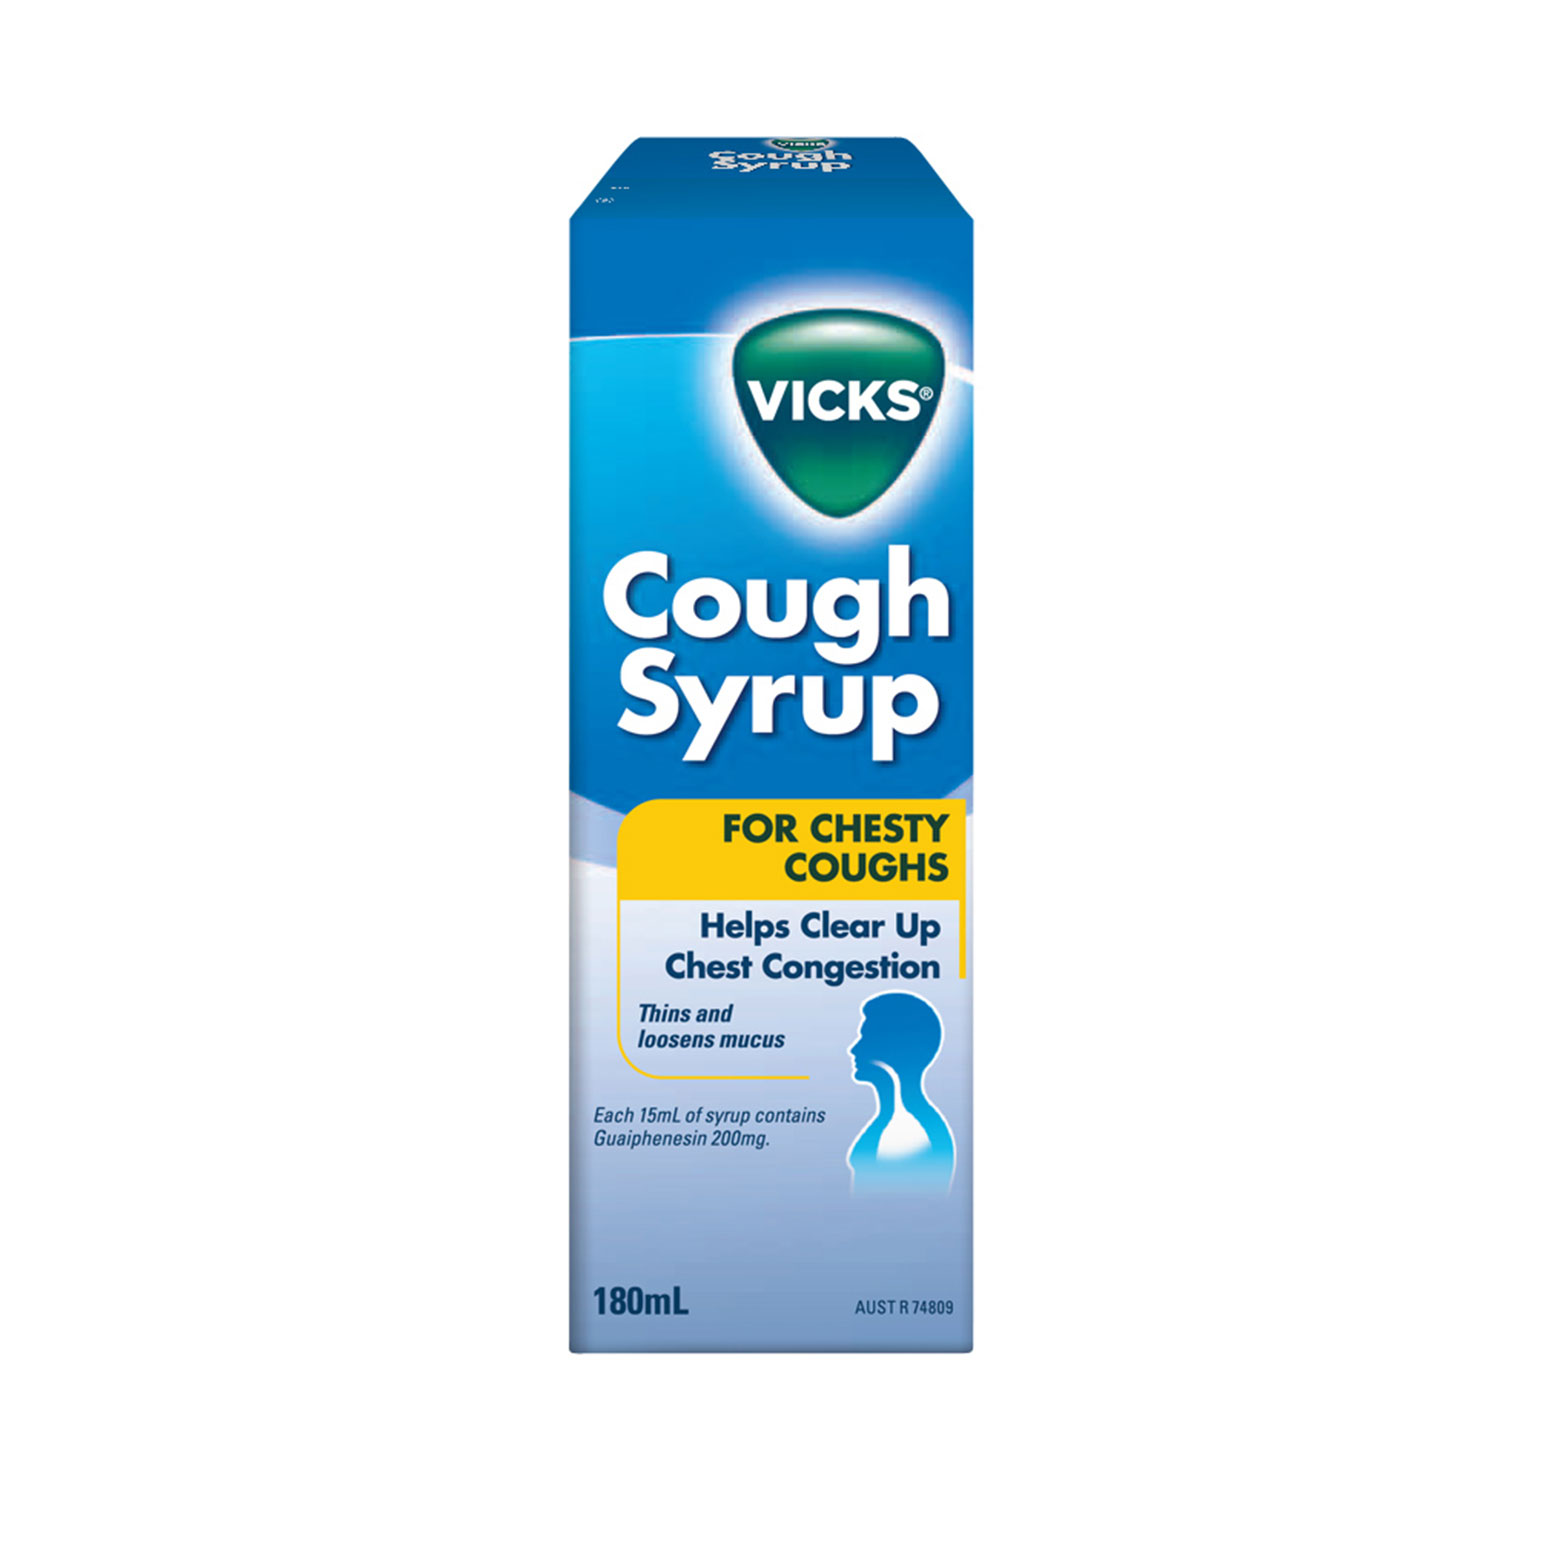 The Tale Of Two Coughs Dry Coughs And Chesty Coughs